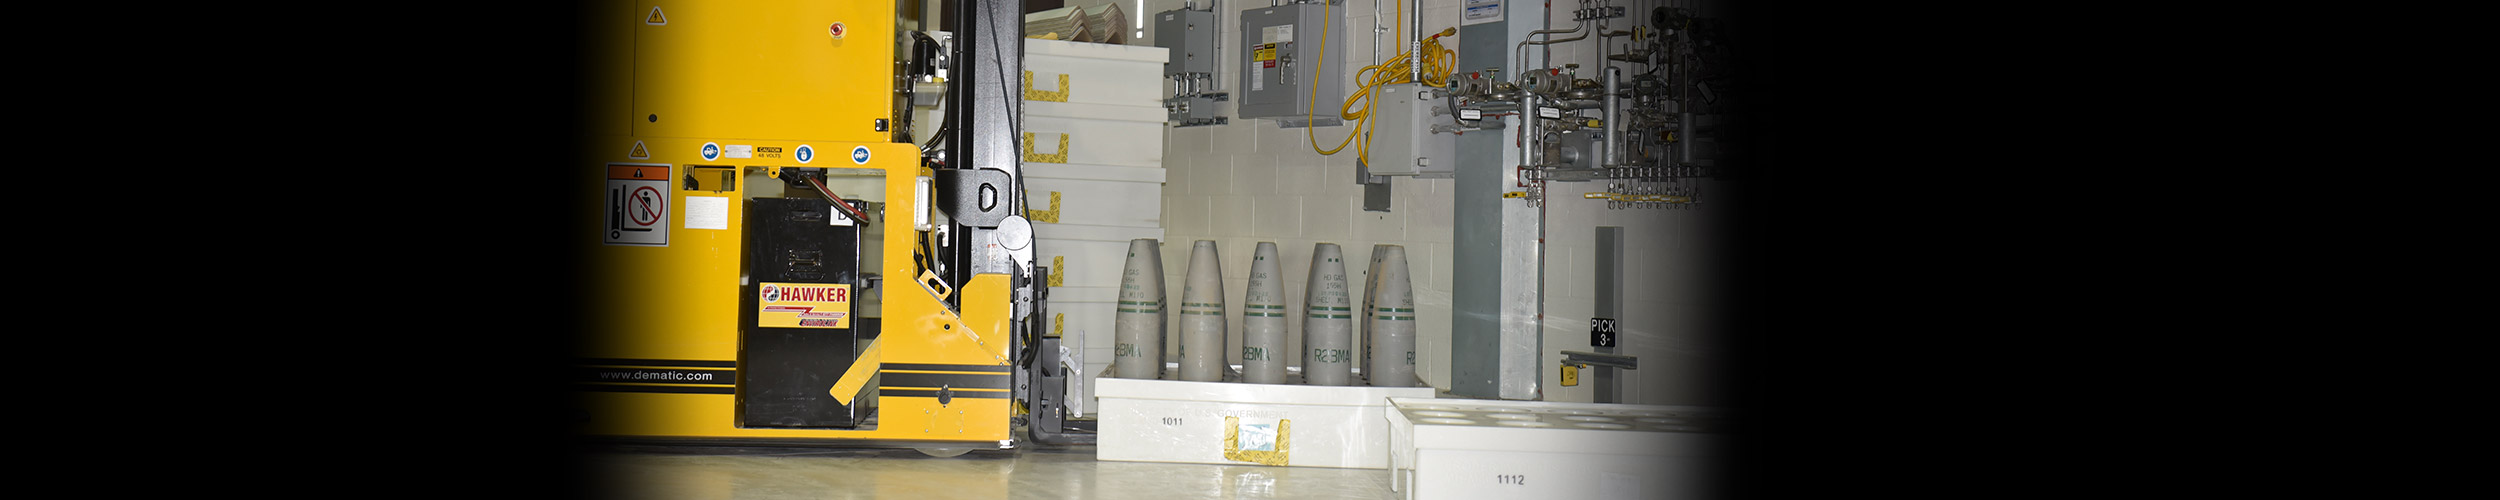 A Pueblo Chemical Agent-Destruction Pilot Plant Automated Guided Vehicle is used to transport munitions from the Enhanced Reconfiguration Building to the Agent Processing Building. The weight and turning radius of the AGVs has caused wearing of the epoxy coating in high traffic areas of the ERB, AGV Corridor and Munitions Body Storage Building.